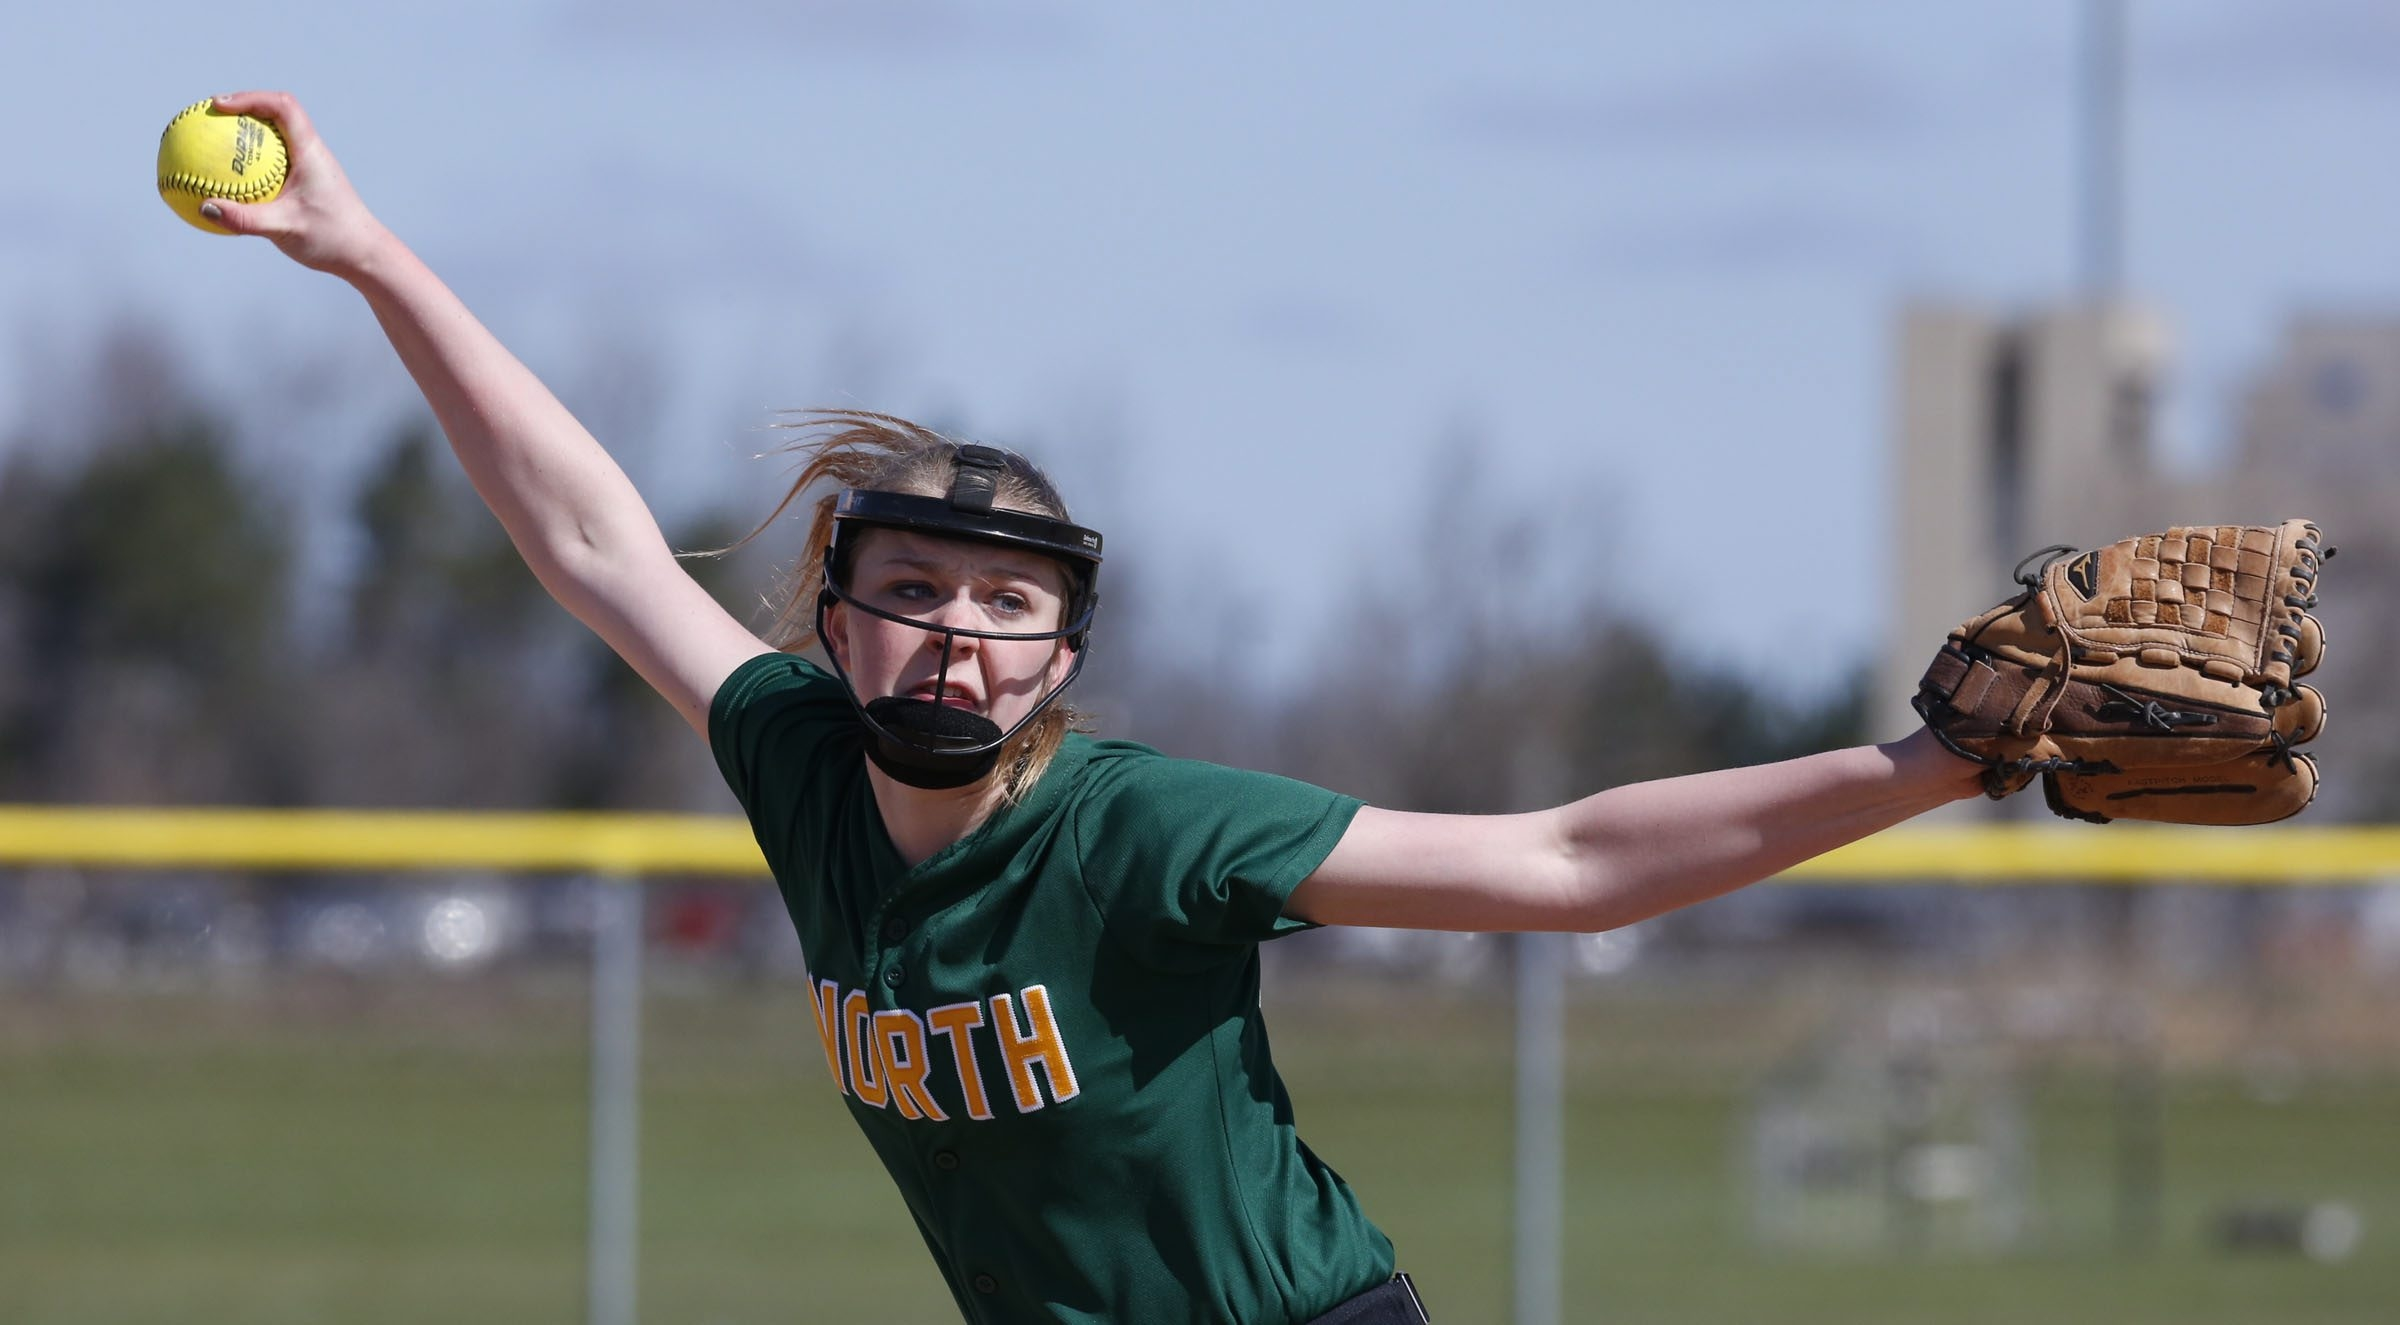 Williamsville North's Morgan Simon delivers a pitch against Sacred Heart on Saturday during action at the Northtown Center in the Gerry Gentner Just Show Up Memorial Softball Tournament.